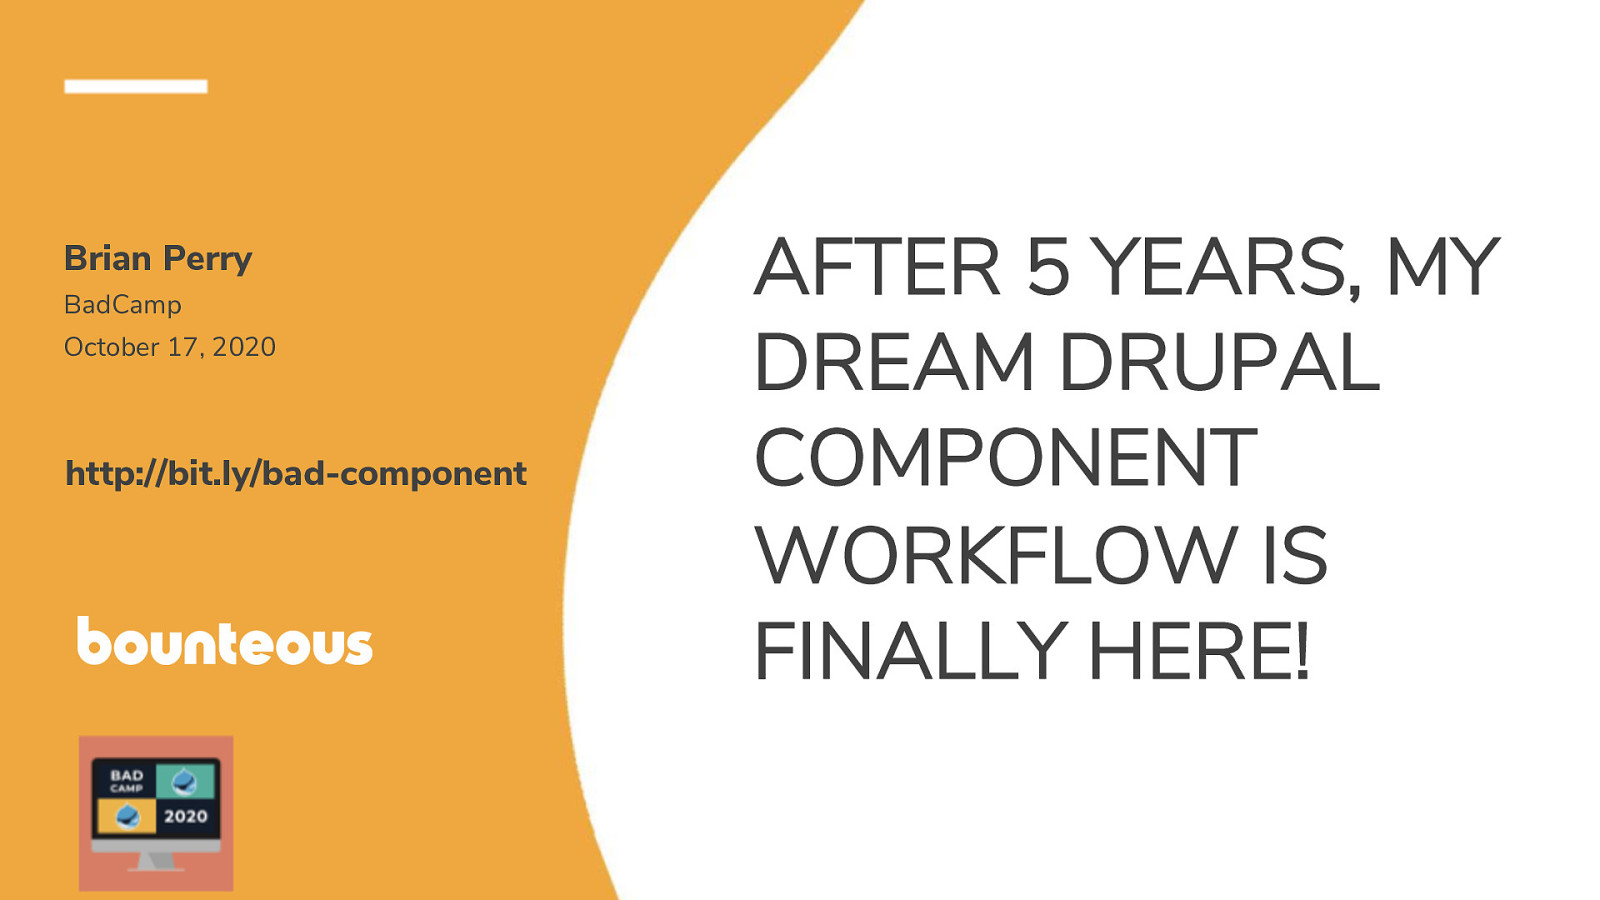 After 5 years, my dream Drupal component workflow is finally here!